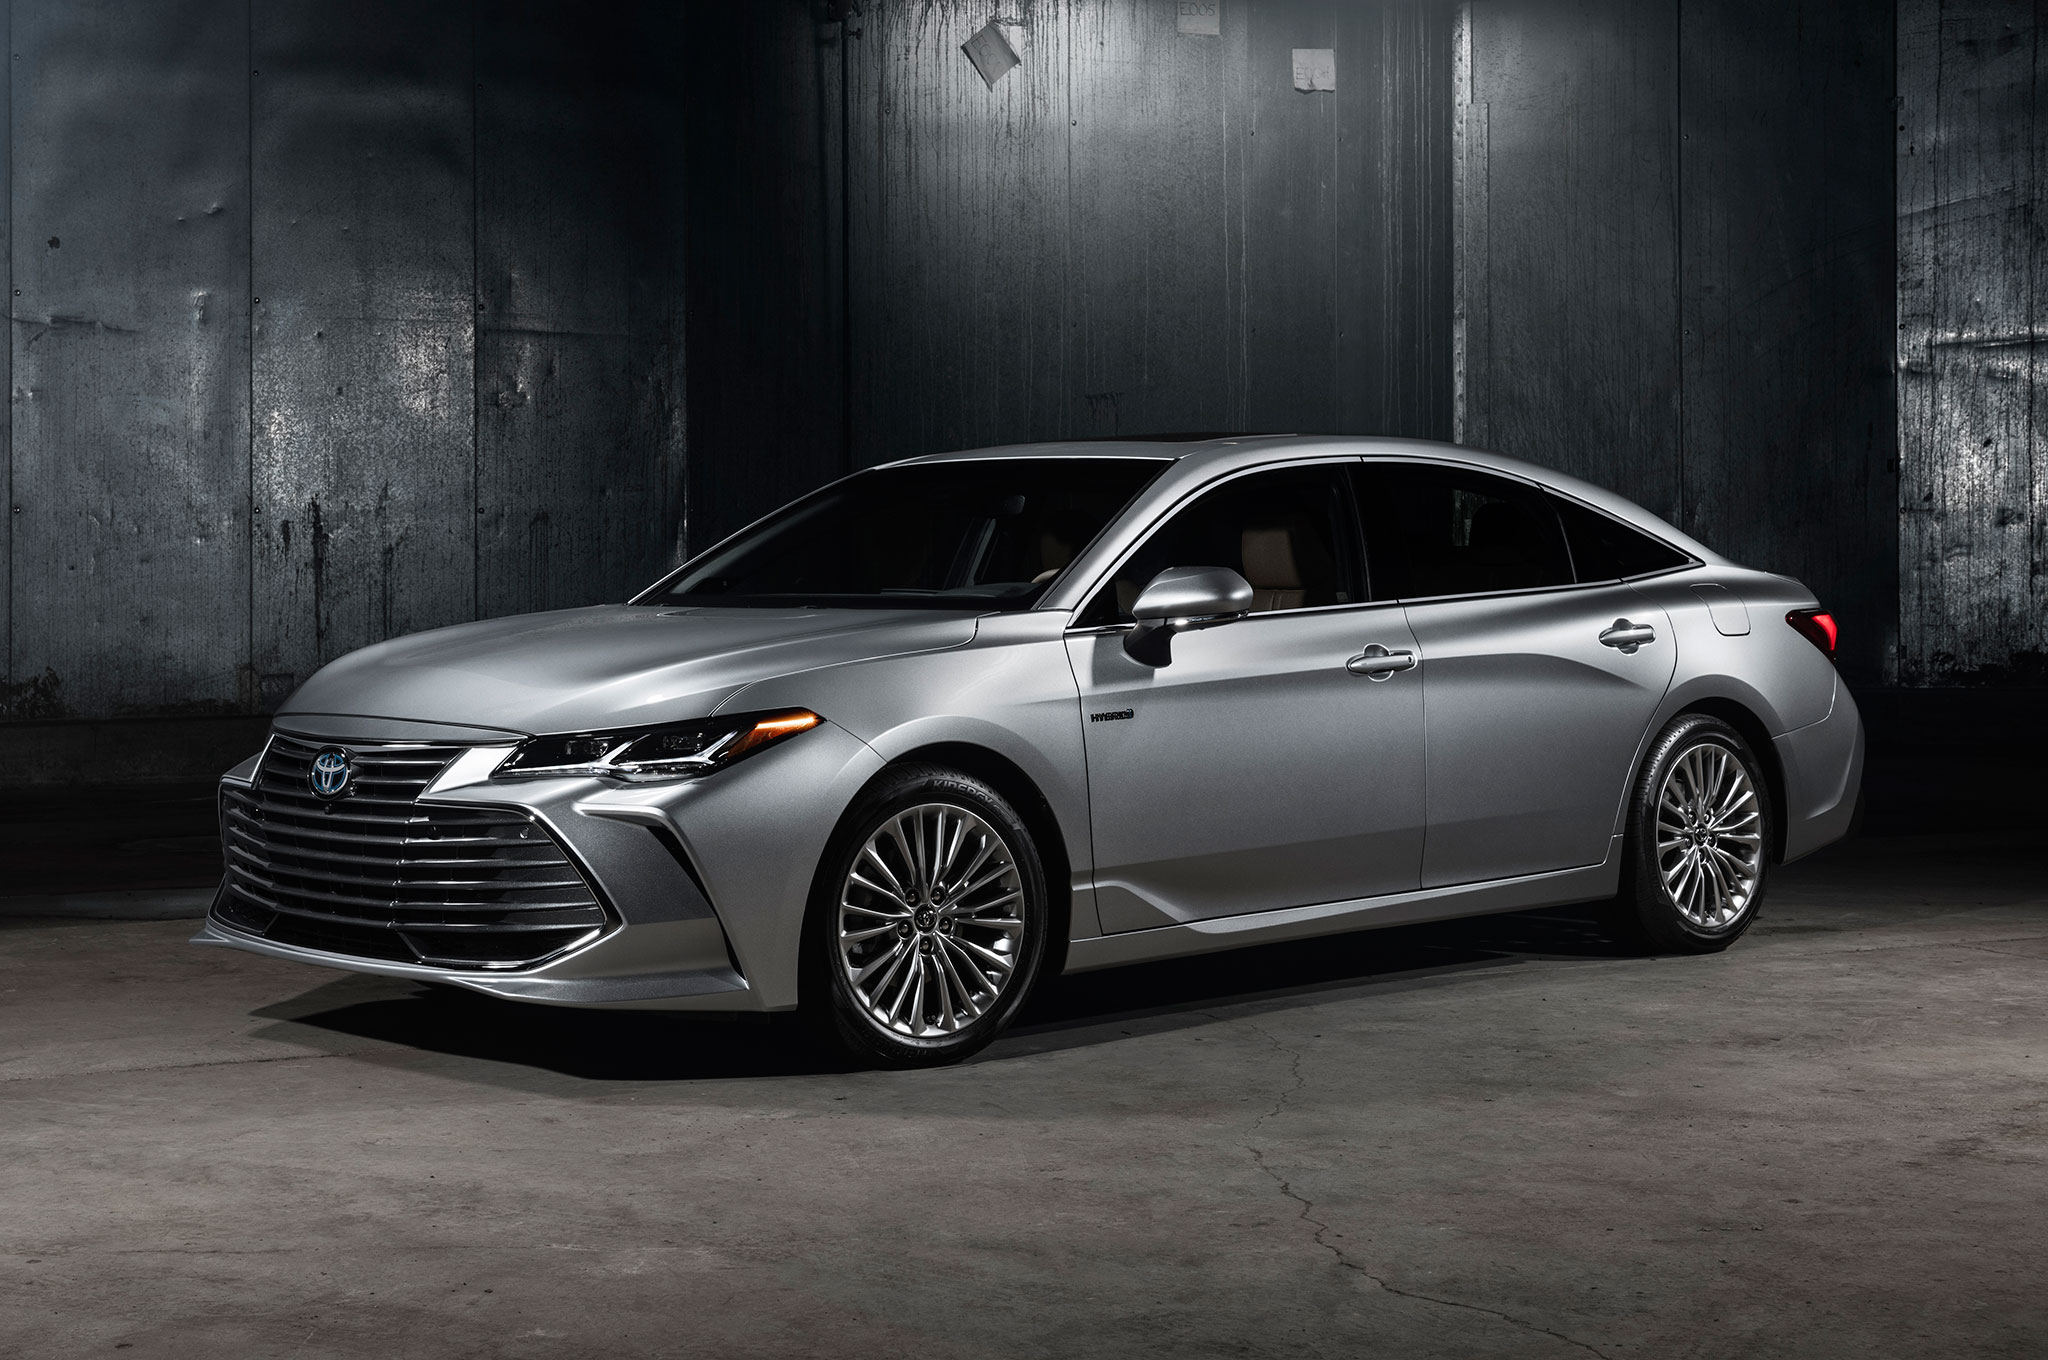 Toyota Avalon First Look: The Next Big Toyota